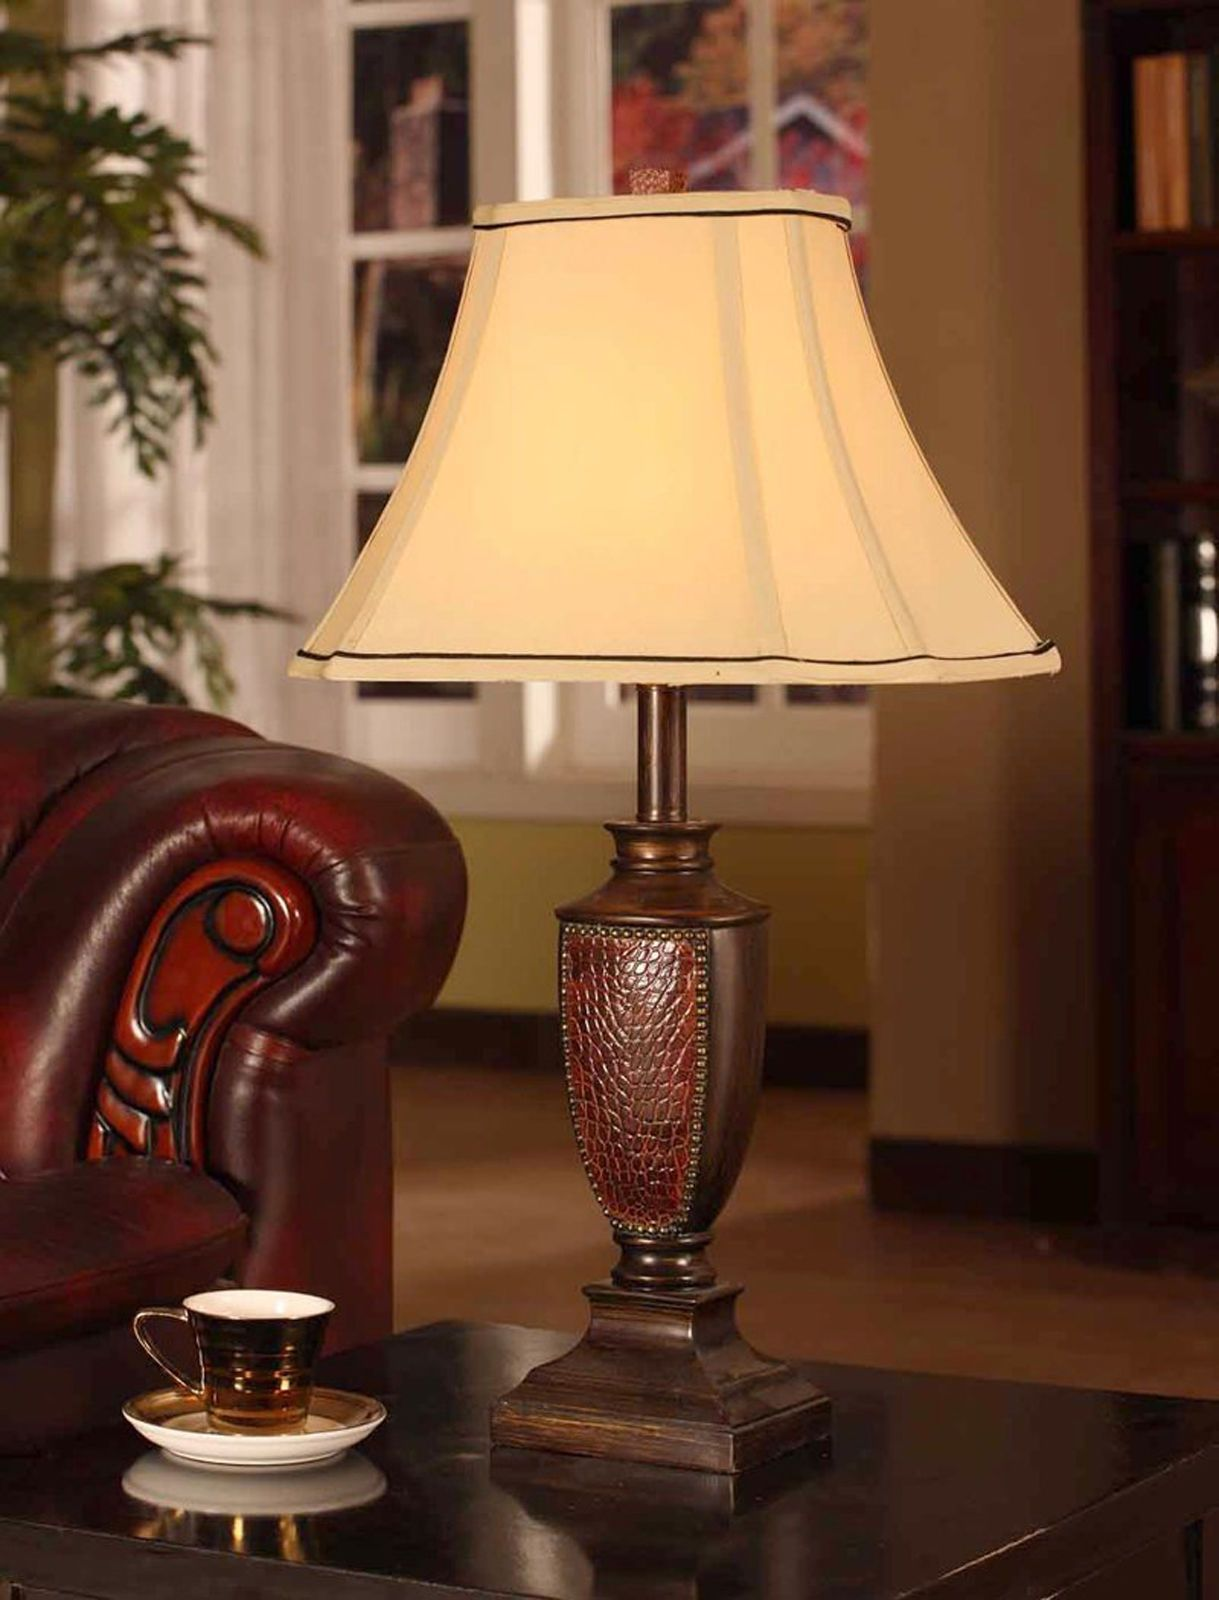 Lamp Table Lamps For Bedroom Living Room Kids Guitar Desk Lamp Musical Notes Shade From The Artistic Style Of The Lamp Shades For Table Lamps #red #table #lamps #for #living #room